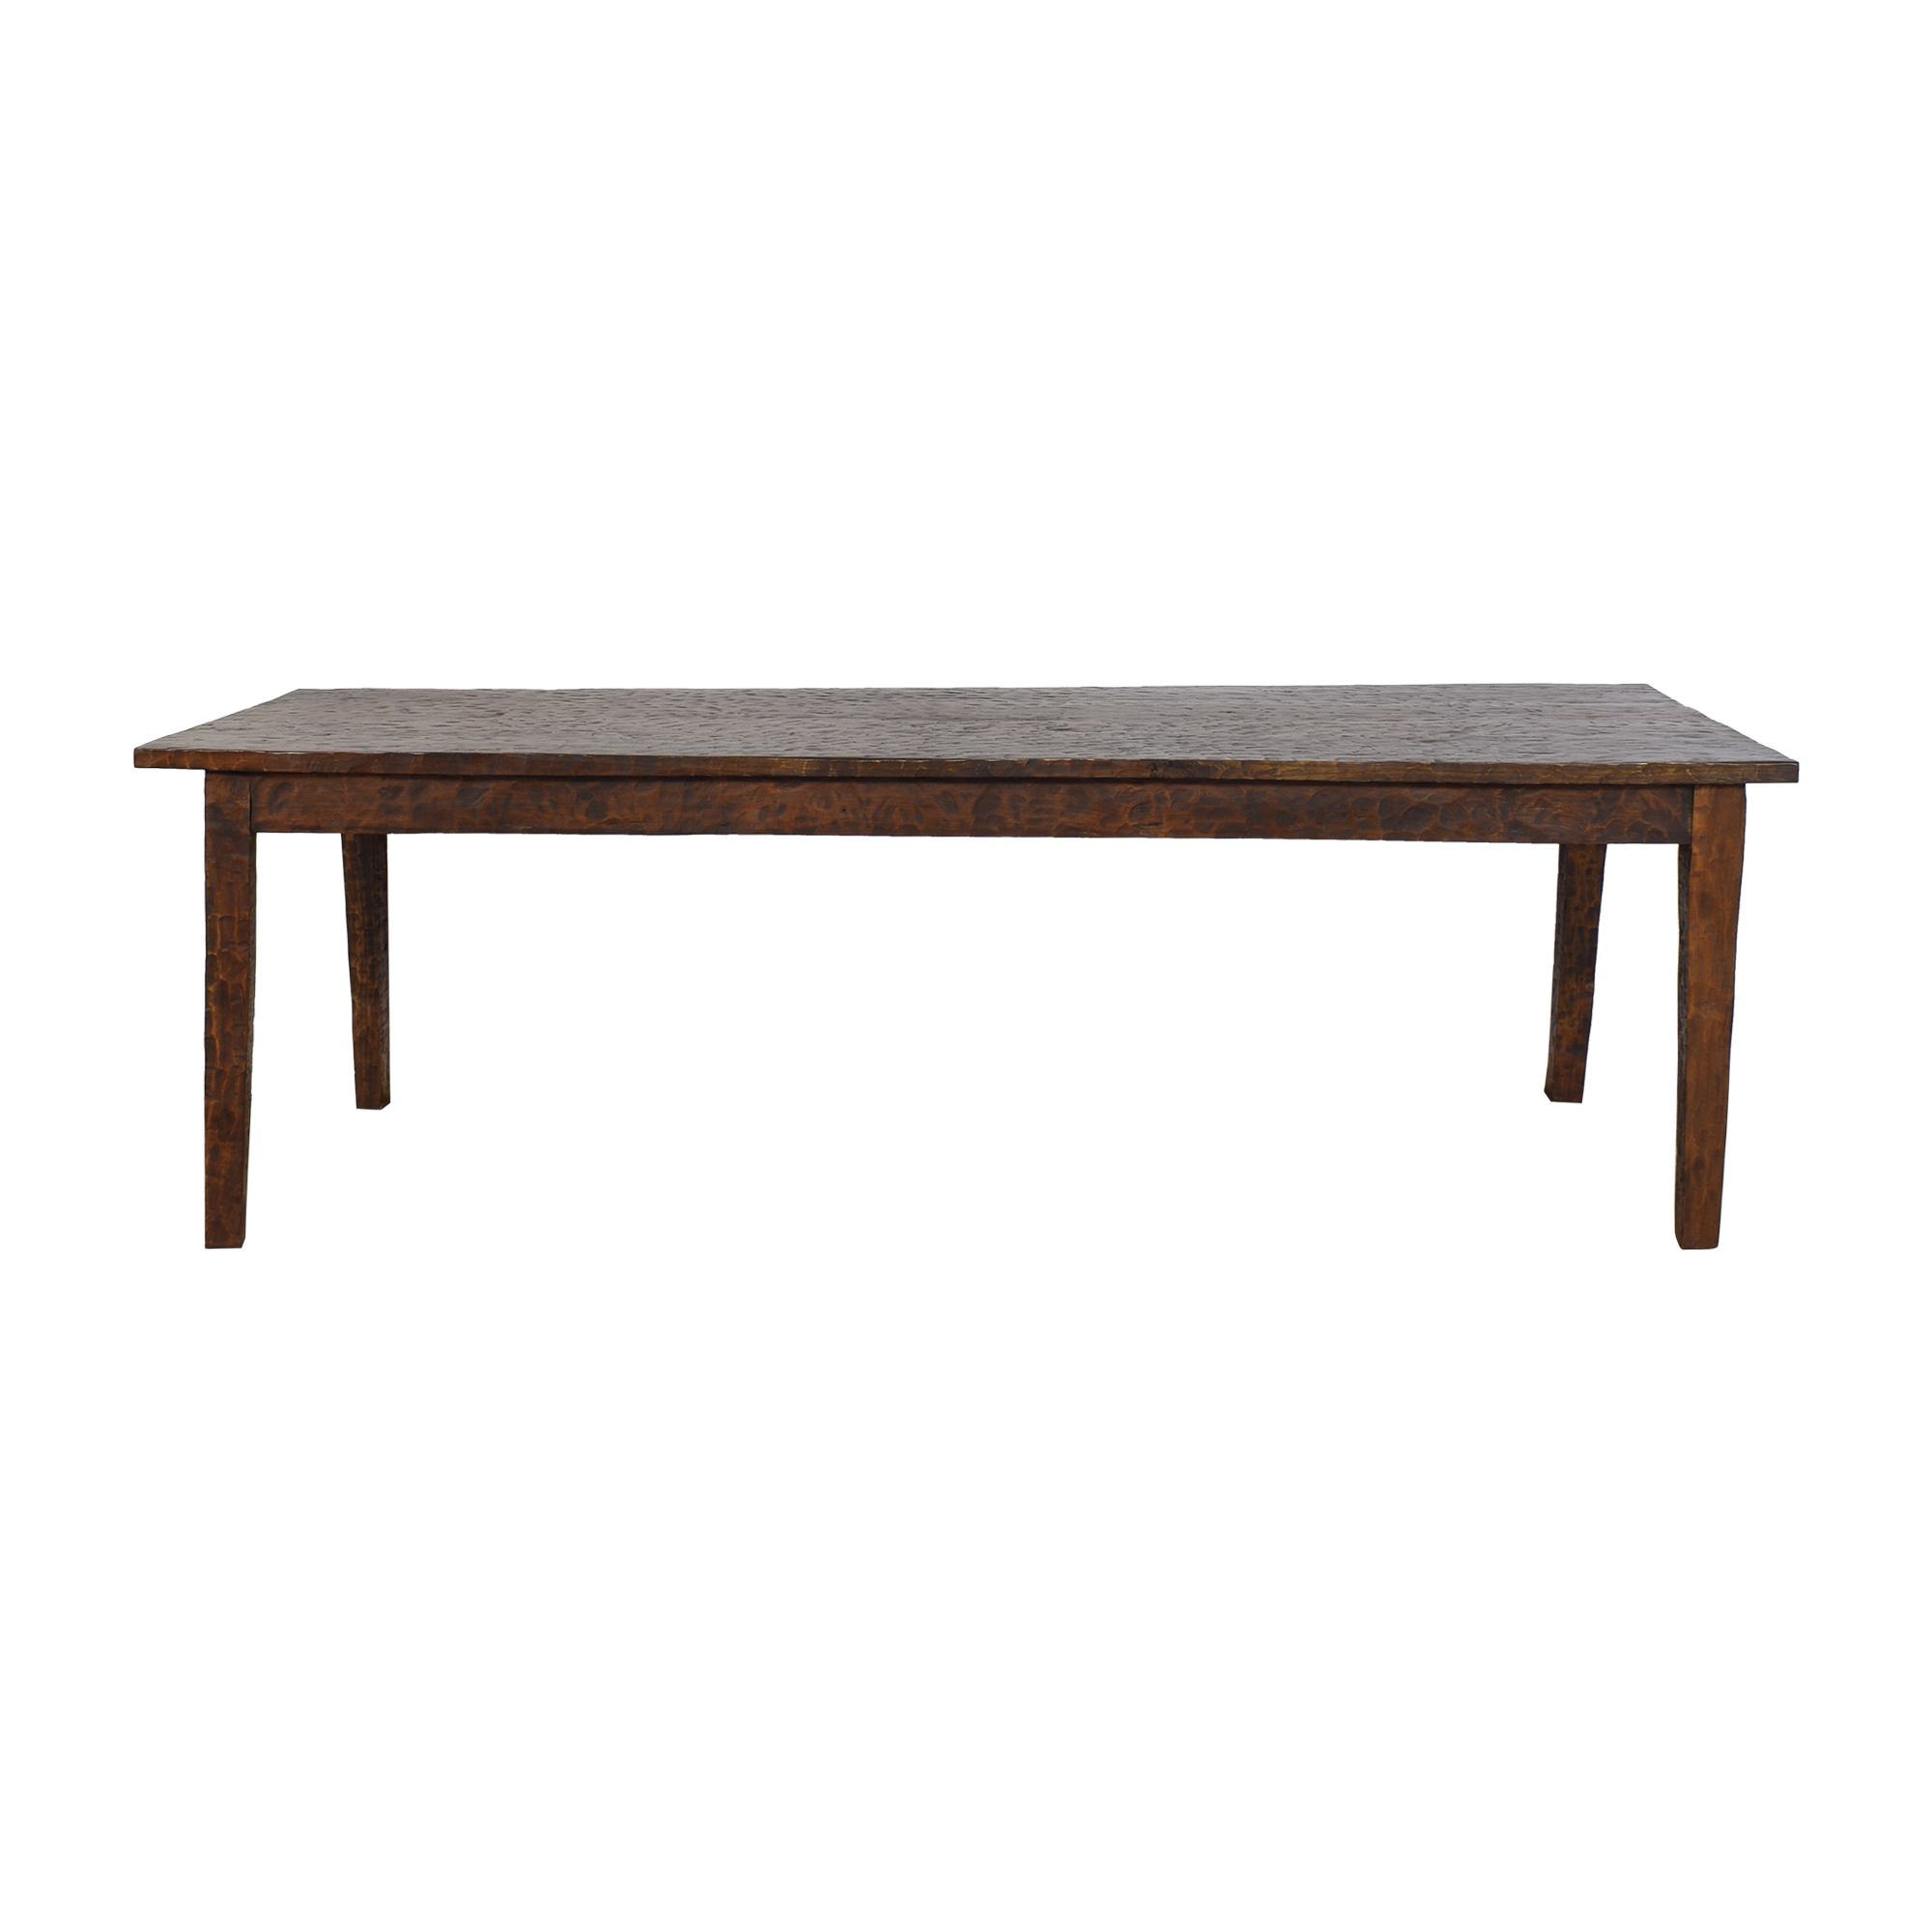 Rustic Style Dining Table for sale